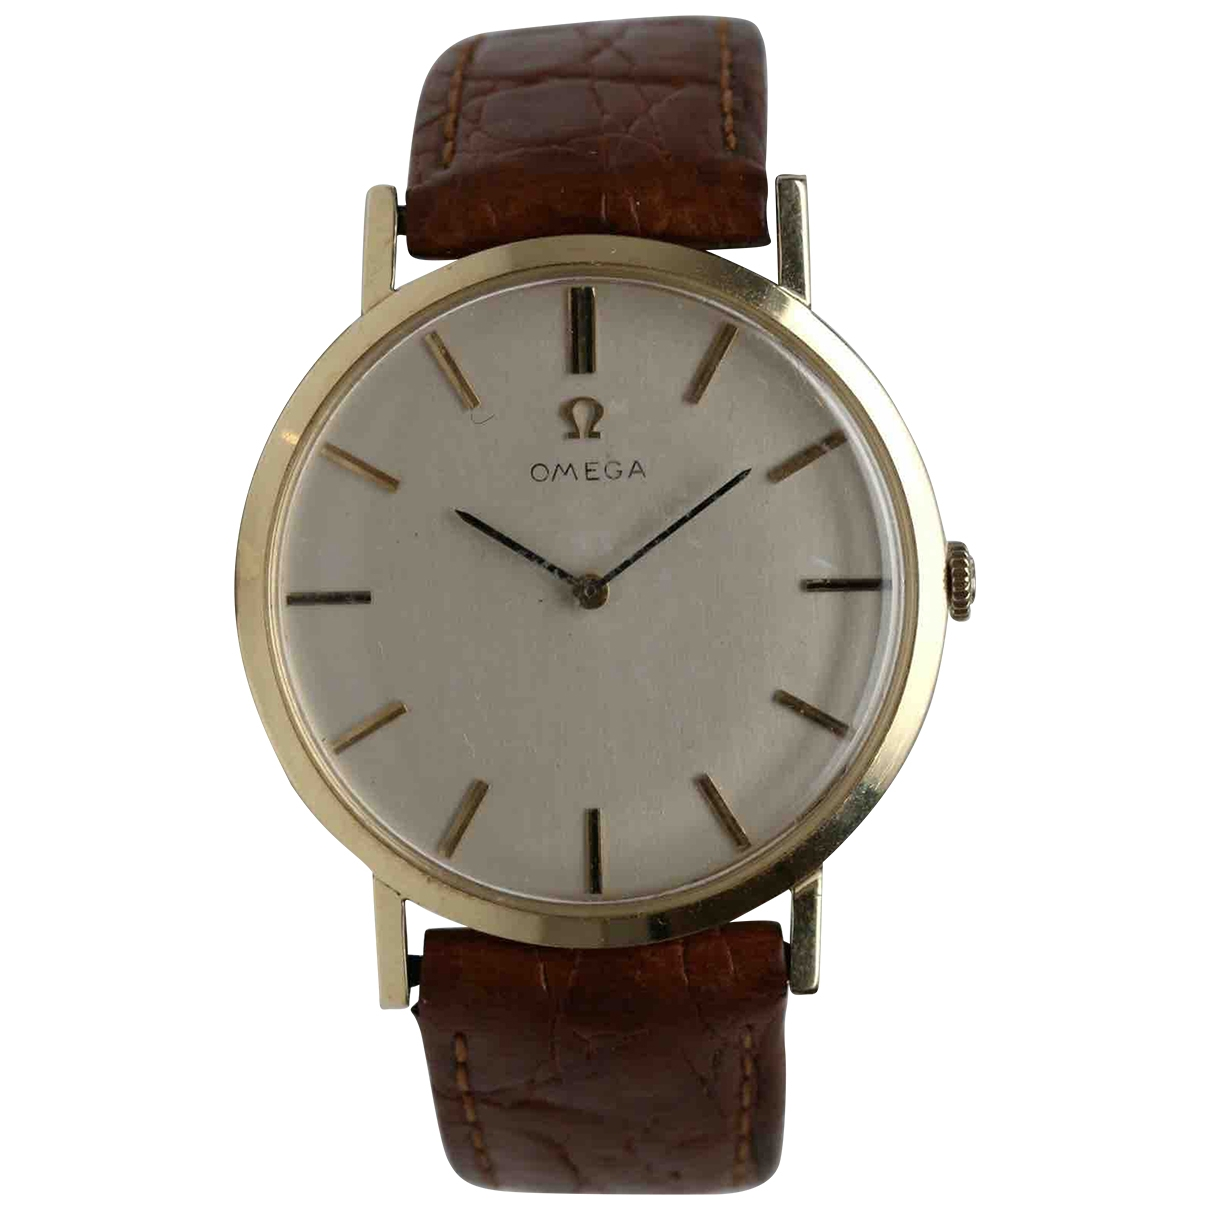 Omega \N Yellow Yellow gold watch for Men \N